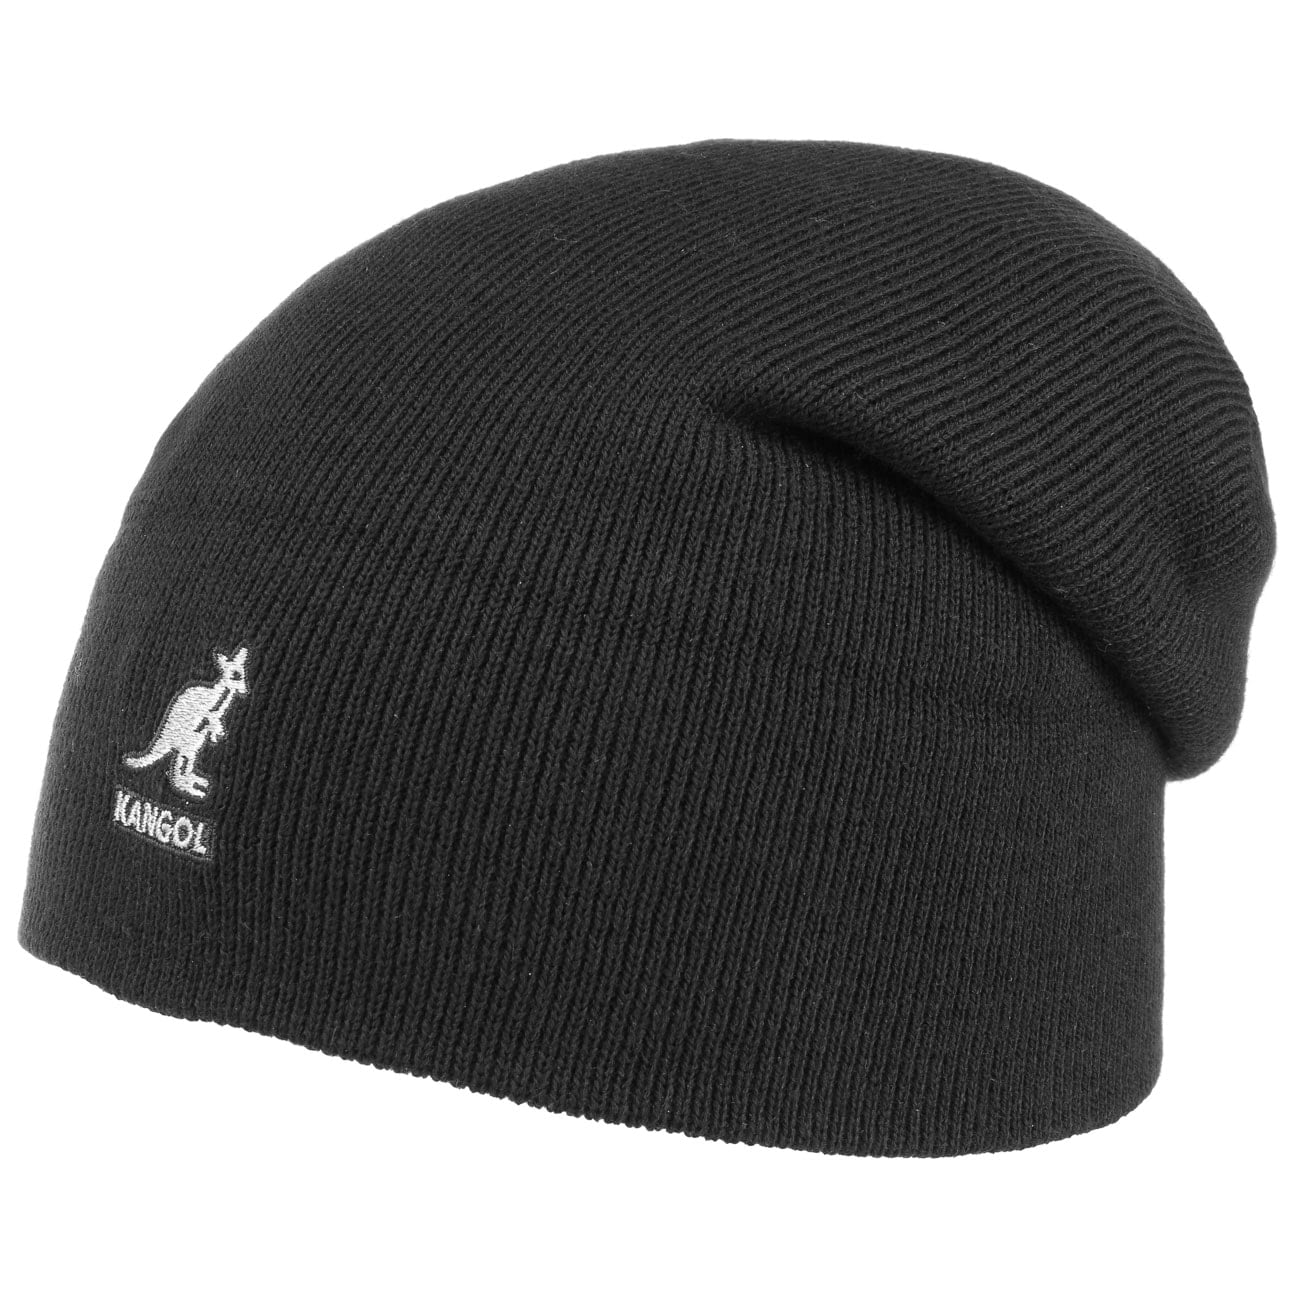 ... Pull On Beanie with Cuff by Kangol - black 5 ... 0ef16594c865